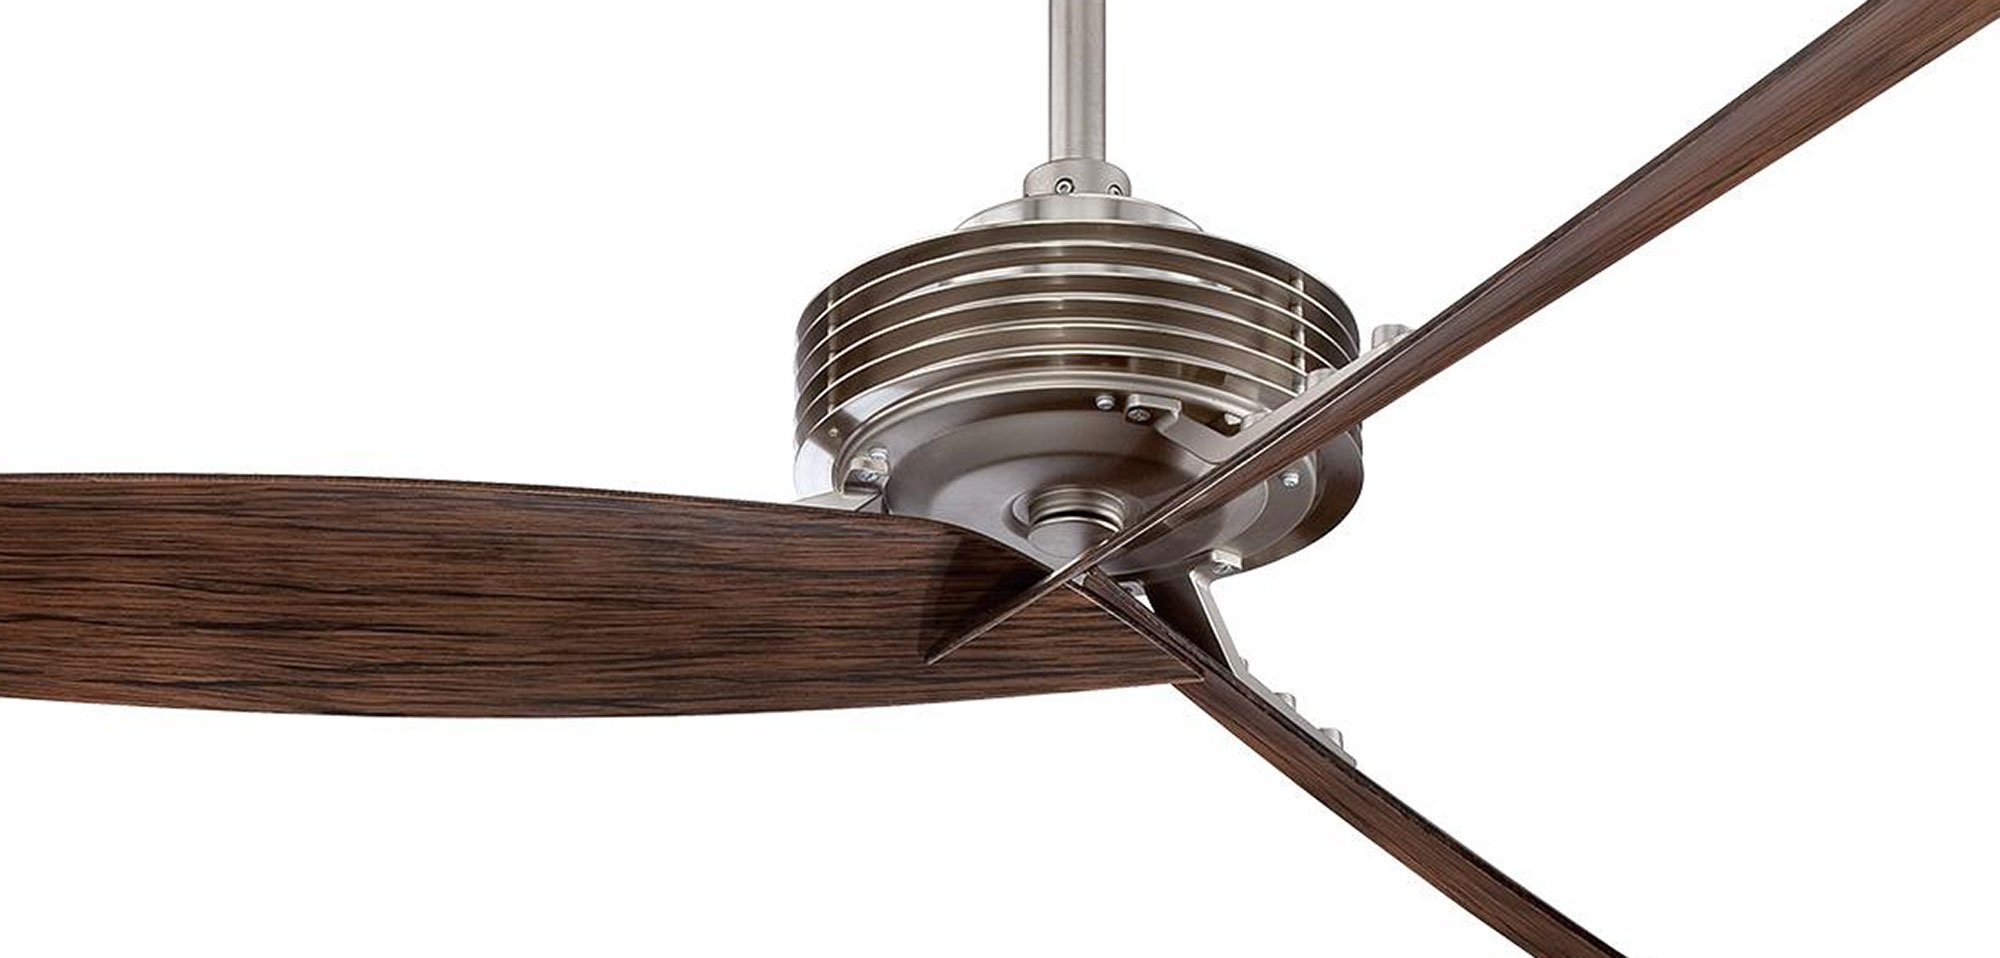 Unique Ceiling Fans For Modern Home Design – Interior Decorating Within Well Known High End Outdoor Ceiling Fans (View 6 of 20)